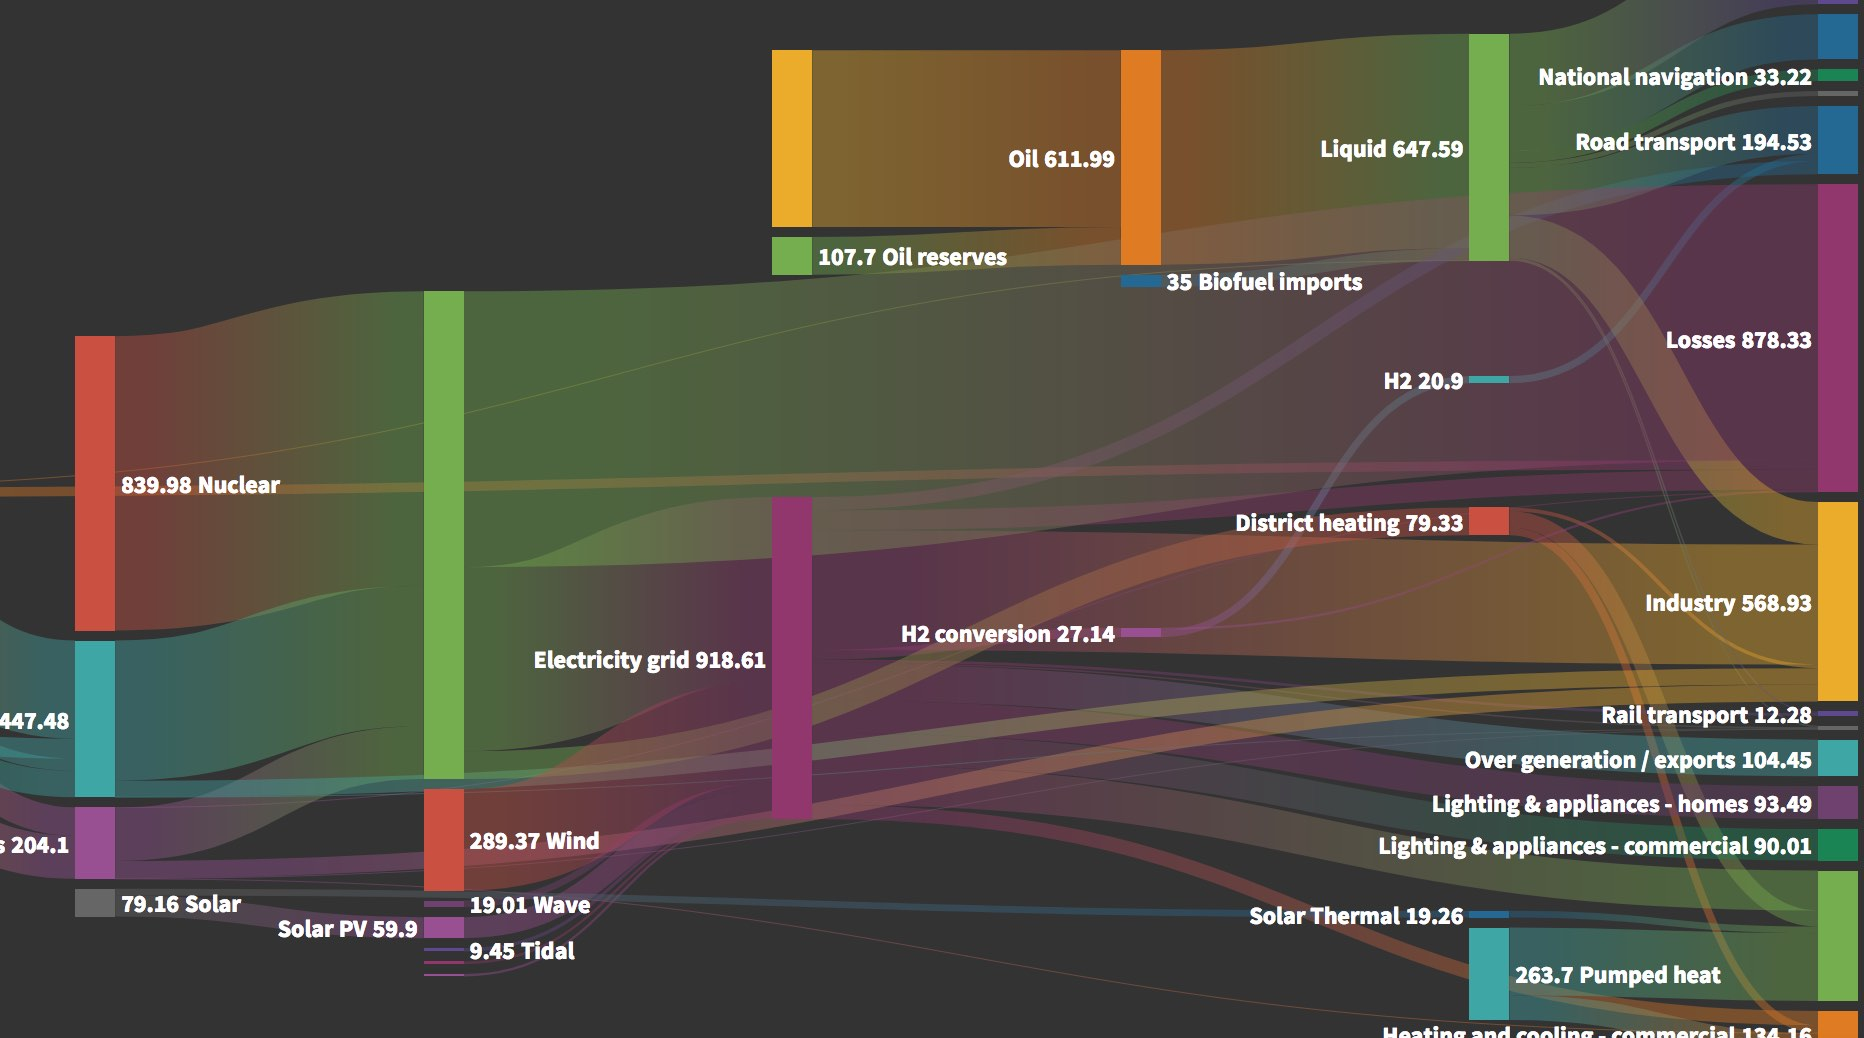 how to draw a sankey diagram scale toyota tundra engine make or alluvial in flourish the blog data visualisation storytelling